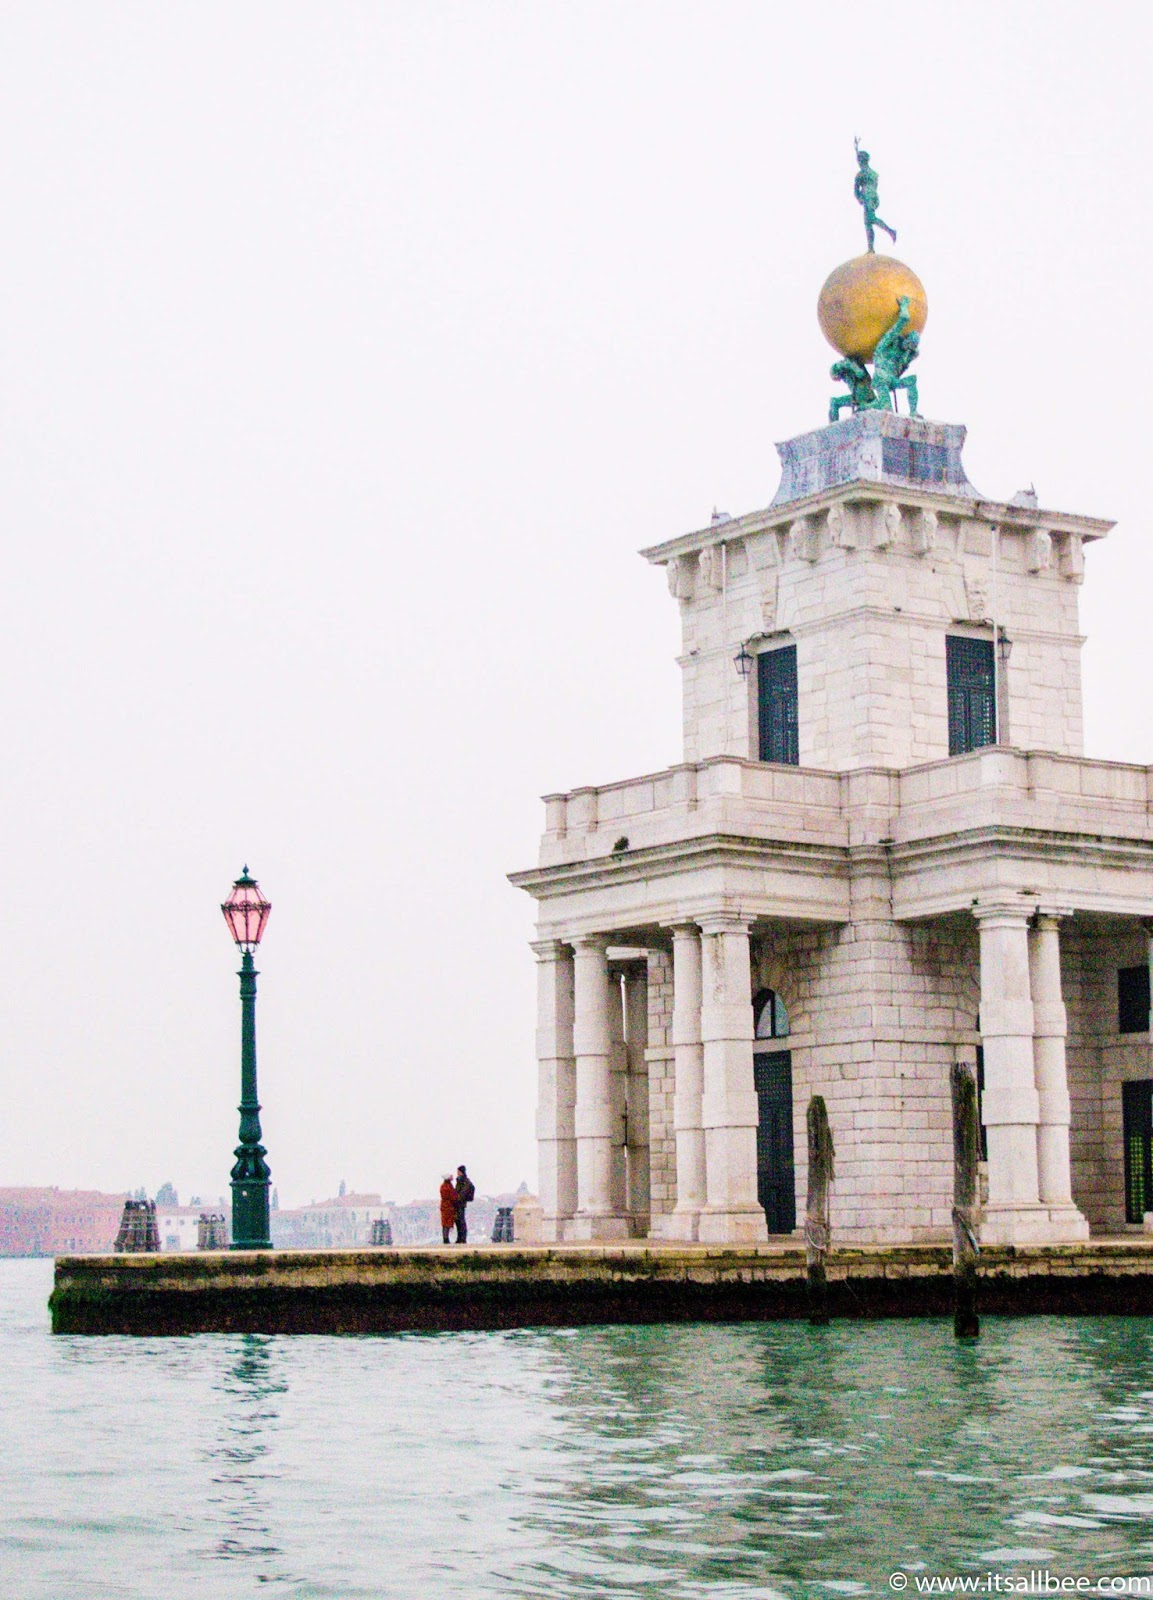 important places in venice | photos of venice city | grand canal view | restaurants on the grand canal in venice